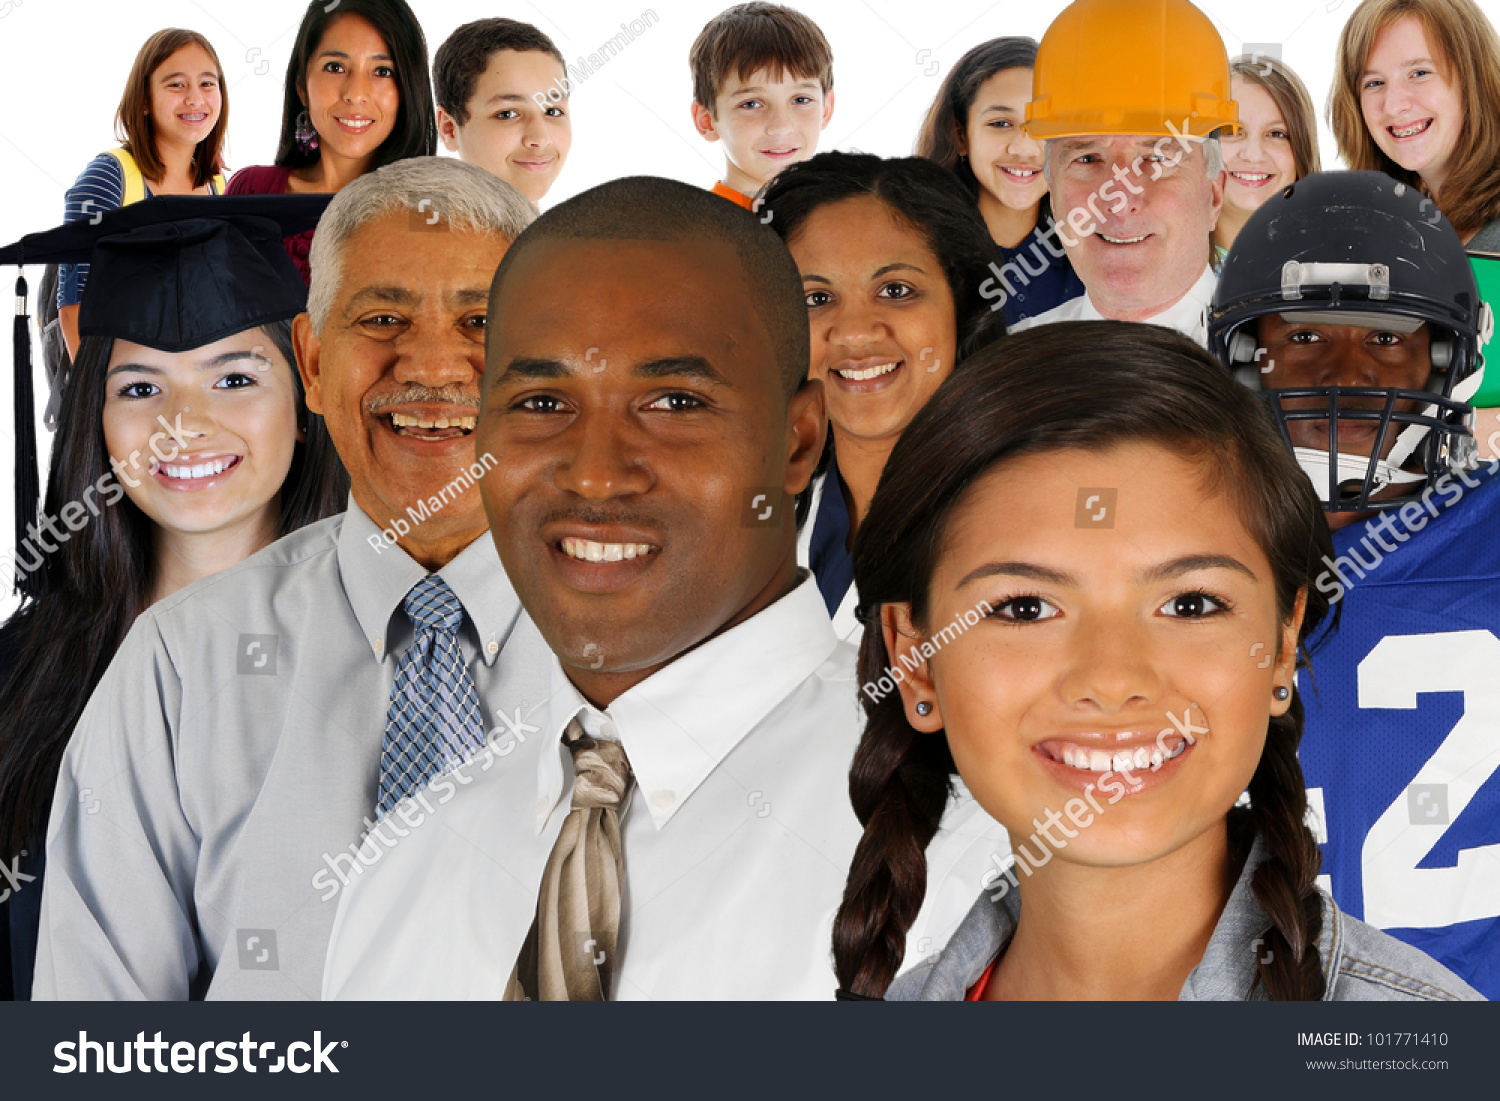 People Of All Different Races And Professions Stock Photo 101771410